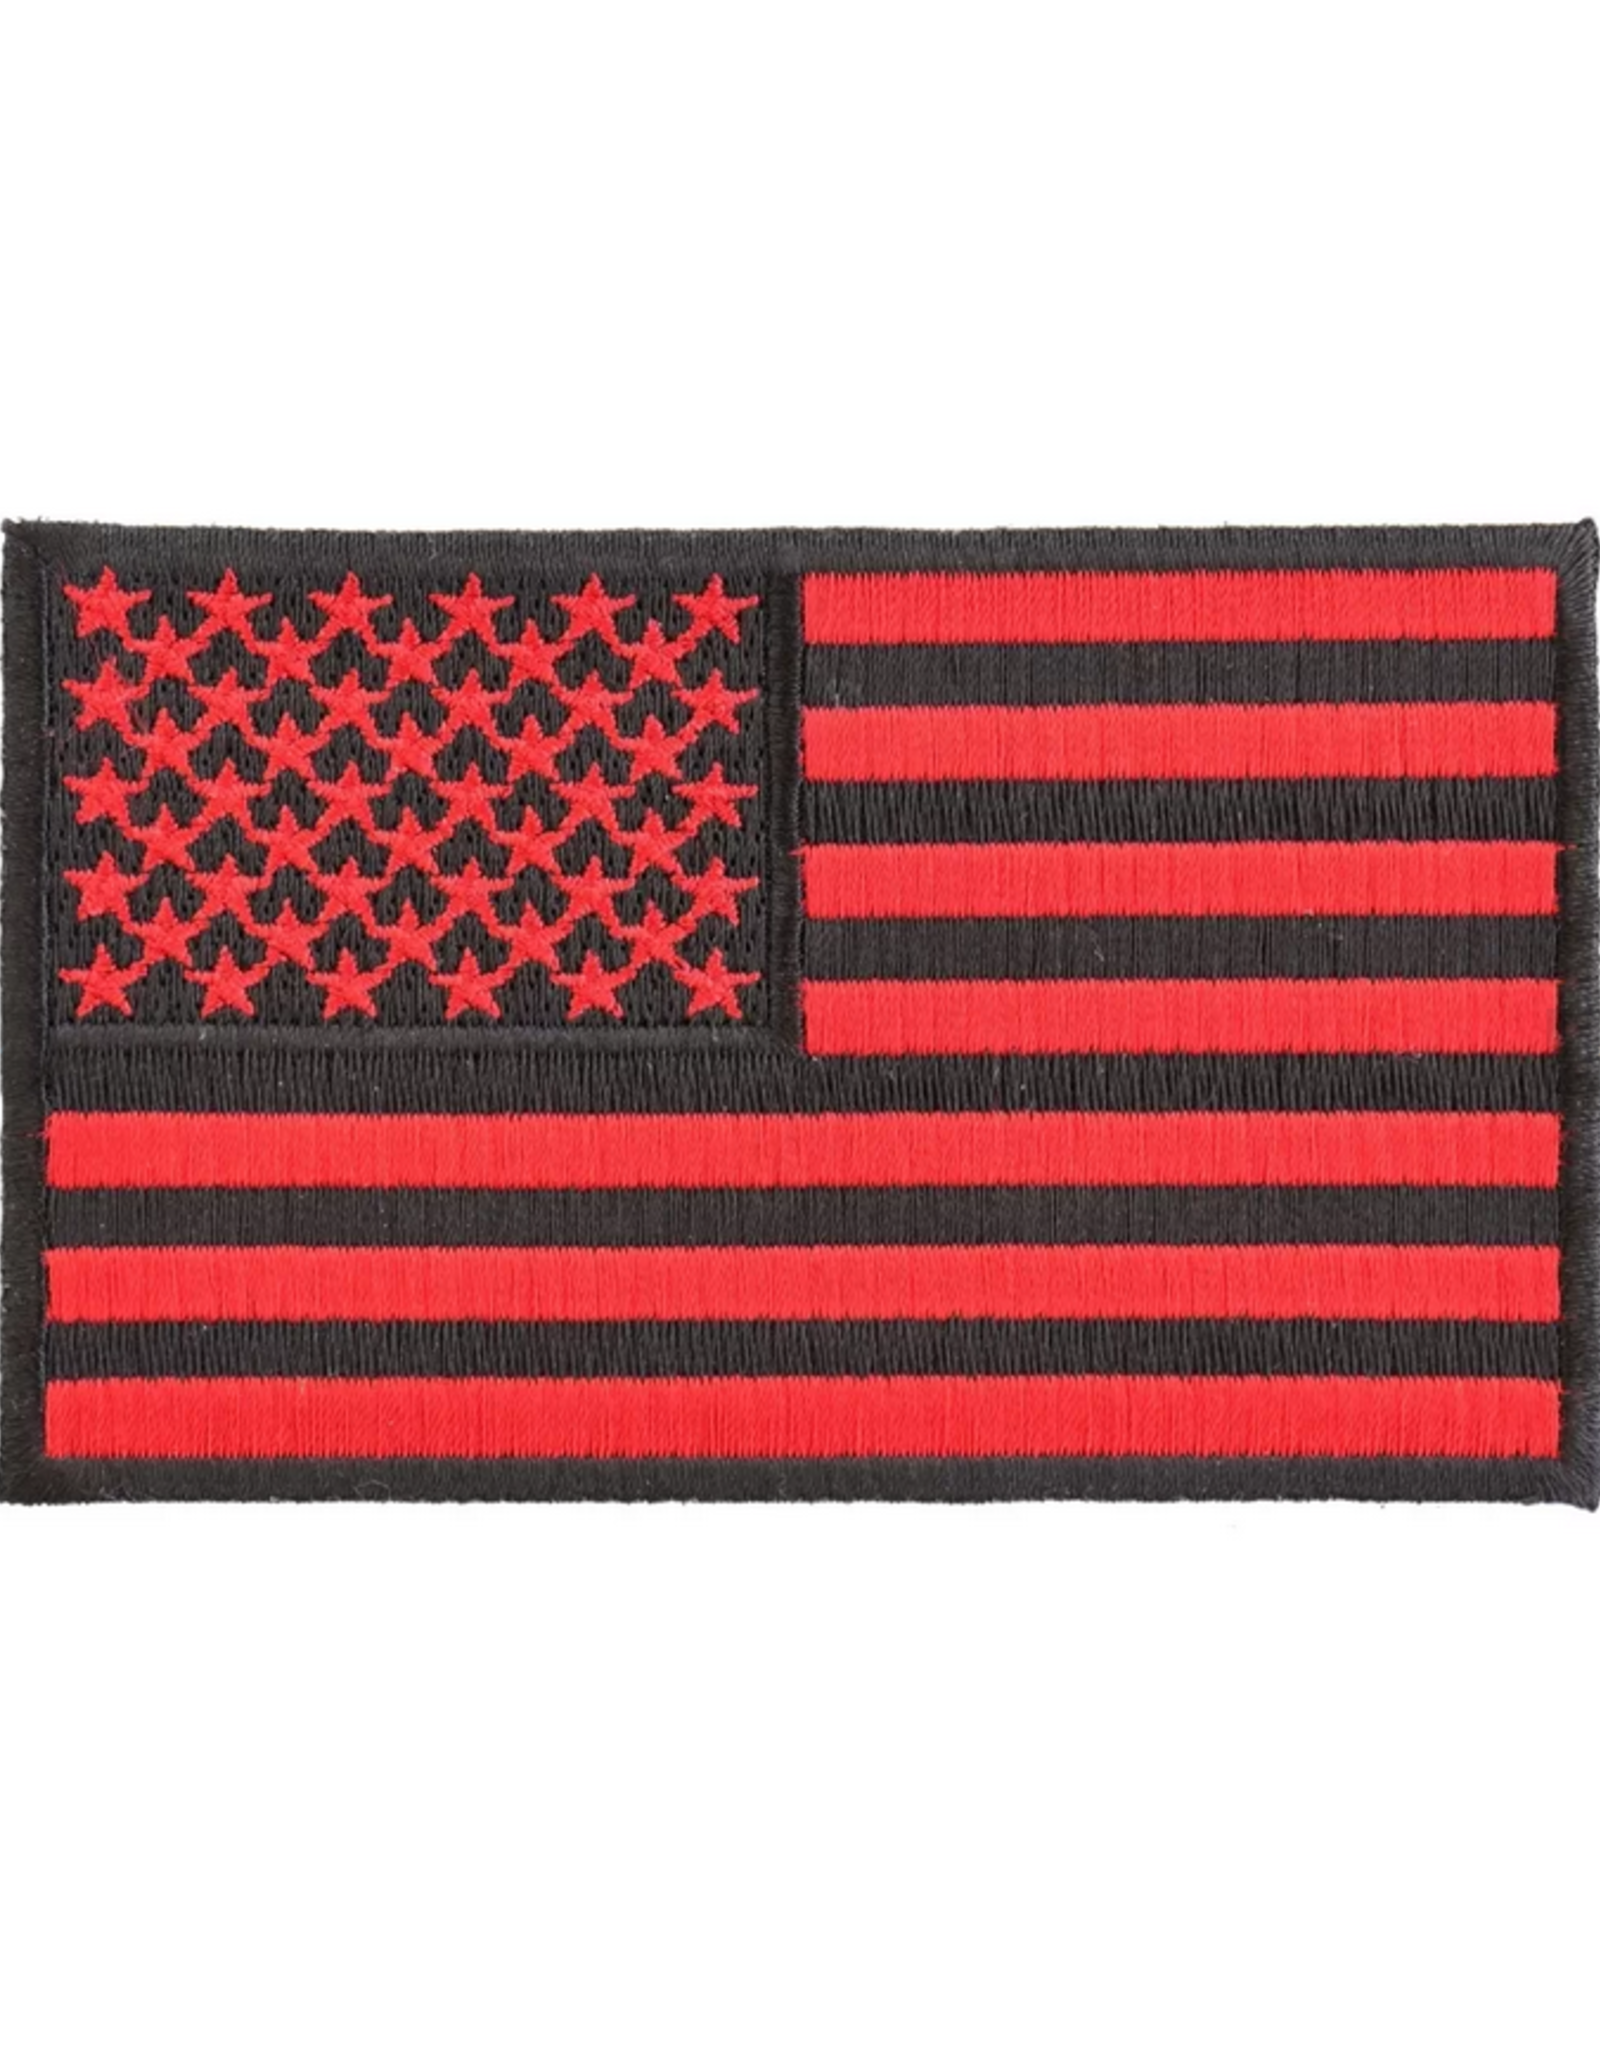 """MidMil Embroidered American Flag Red on Black 4"""" wide x 2.5"""" high"""